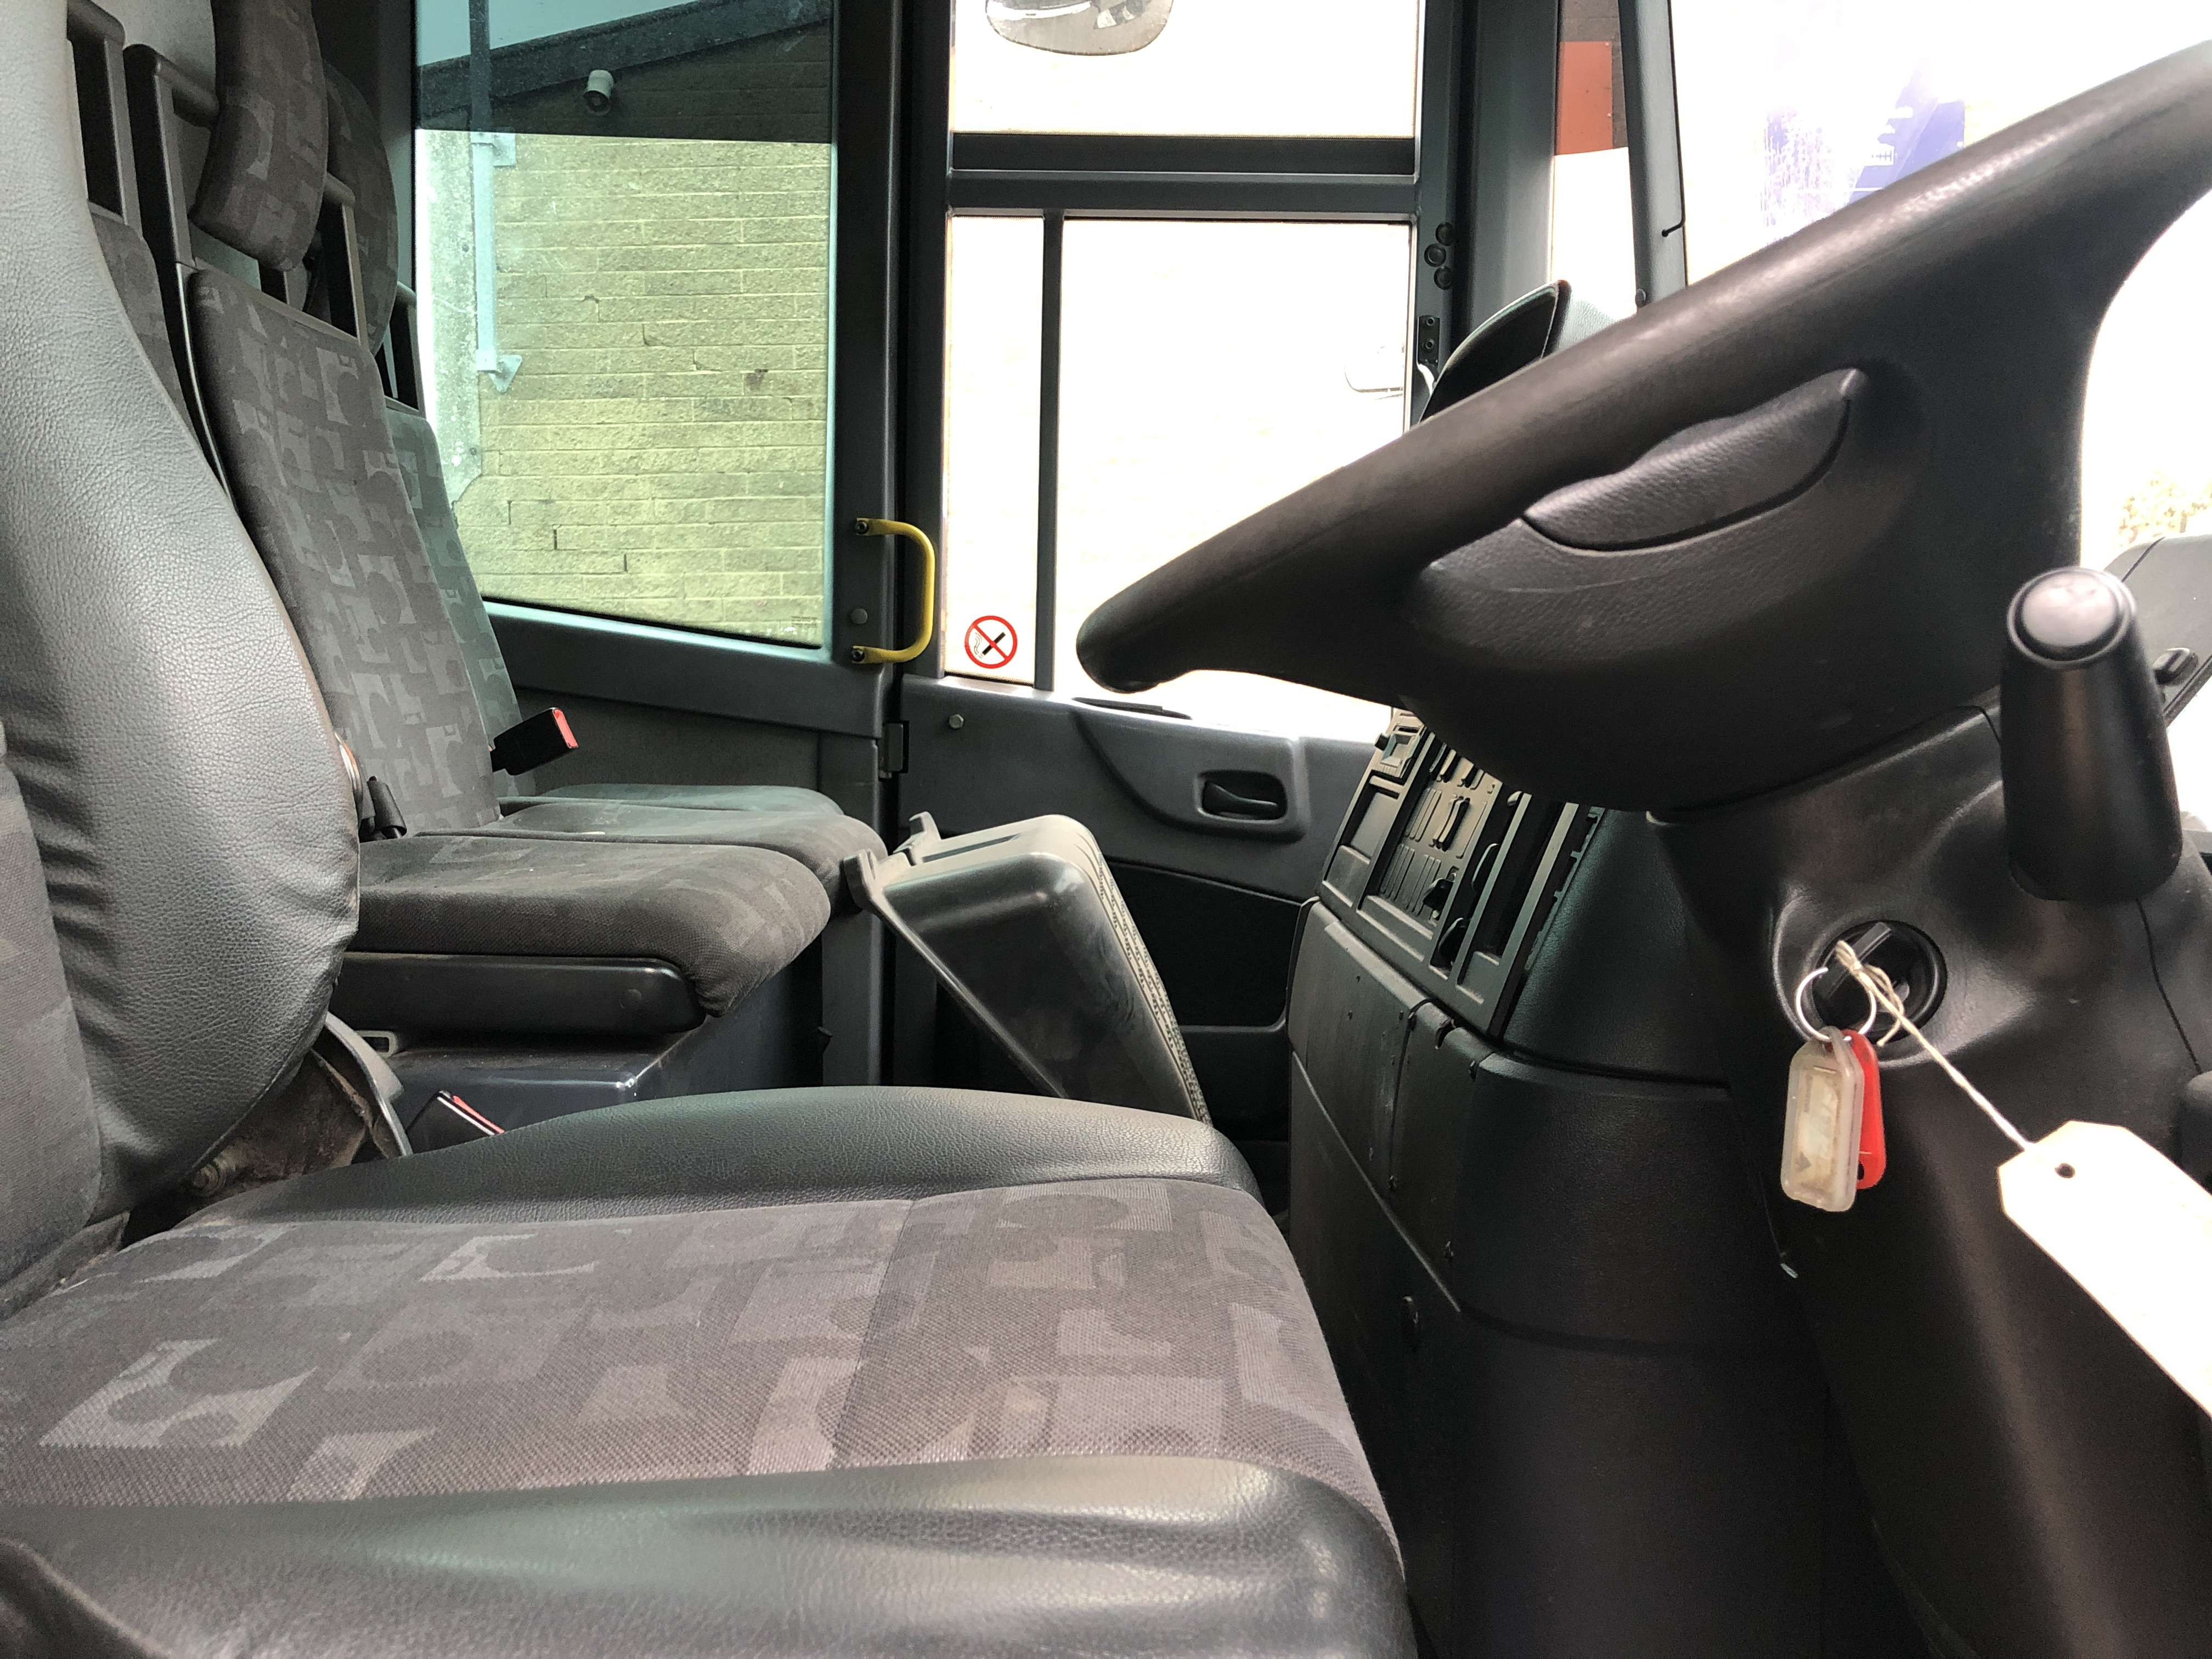 Mercedes Econic 70/30 split body twinpack refuse truck for sale 7